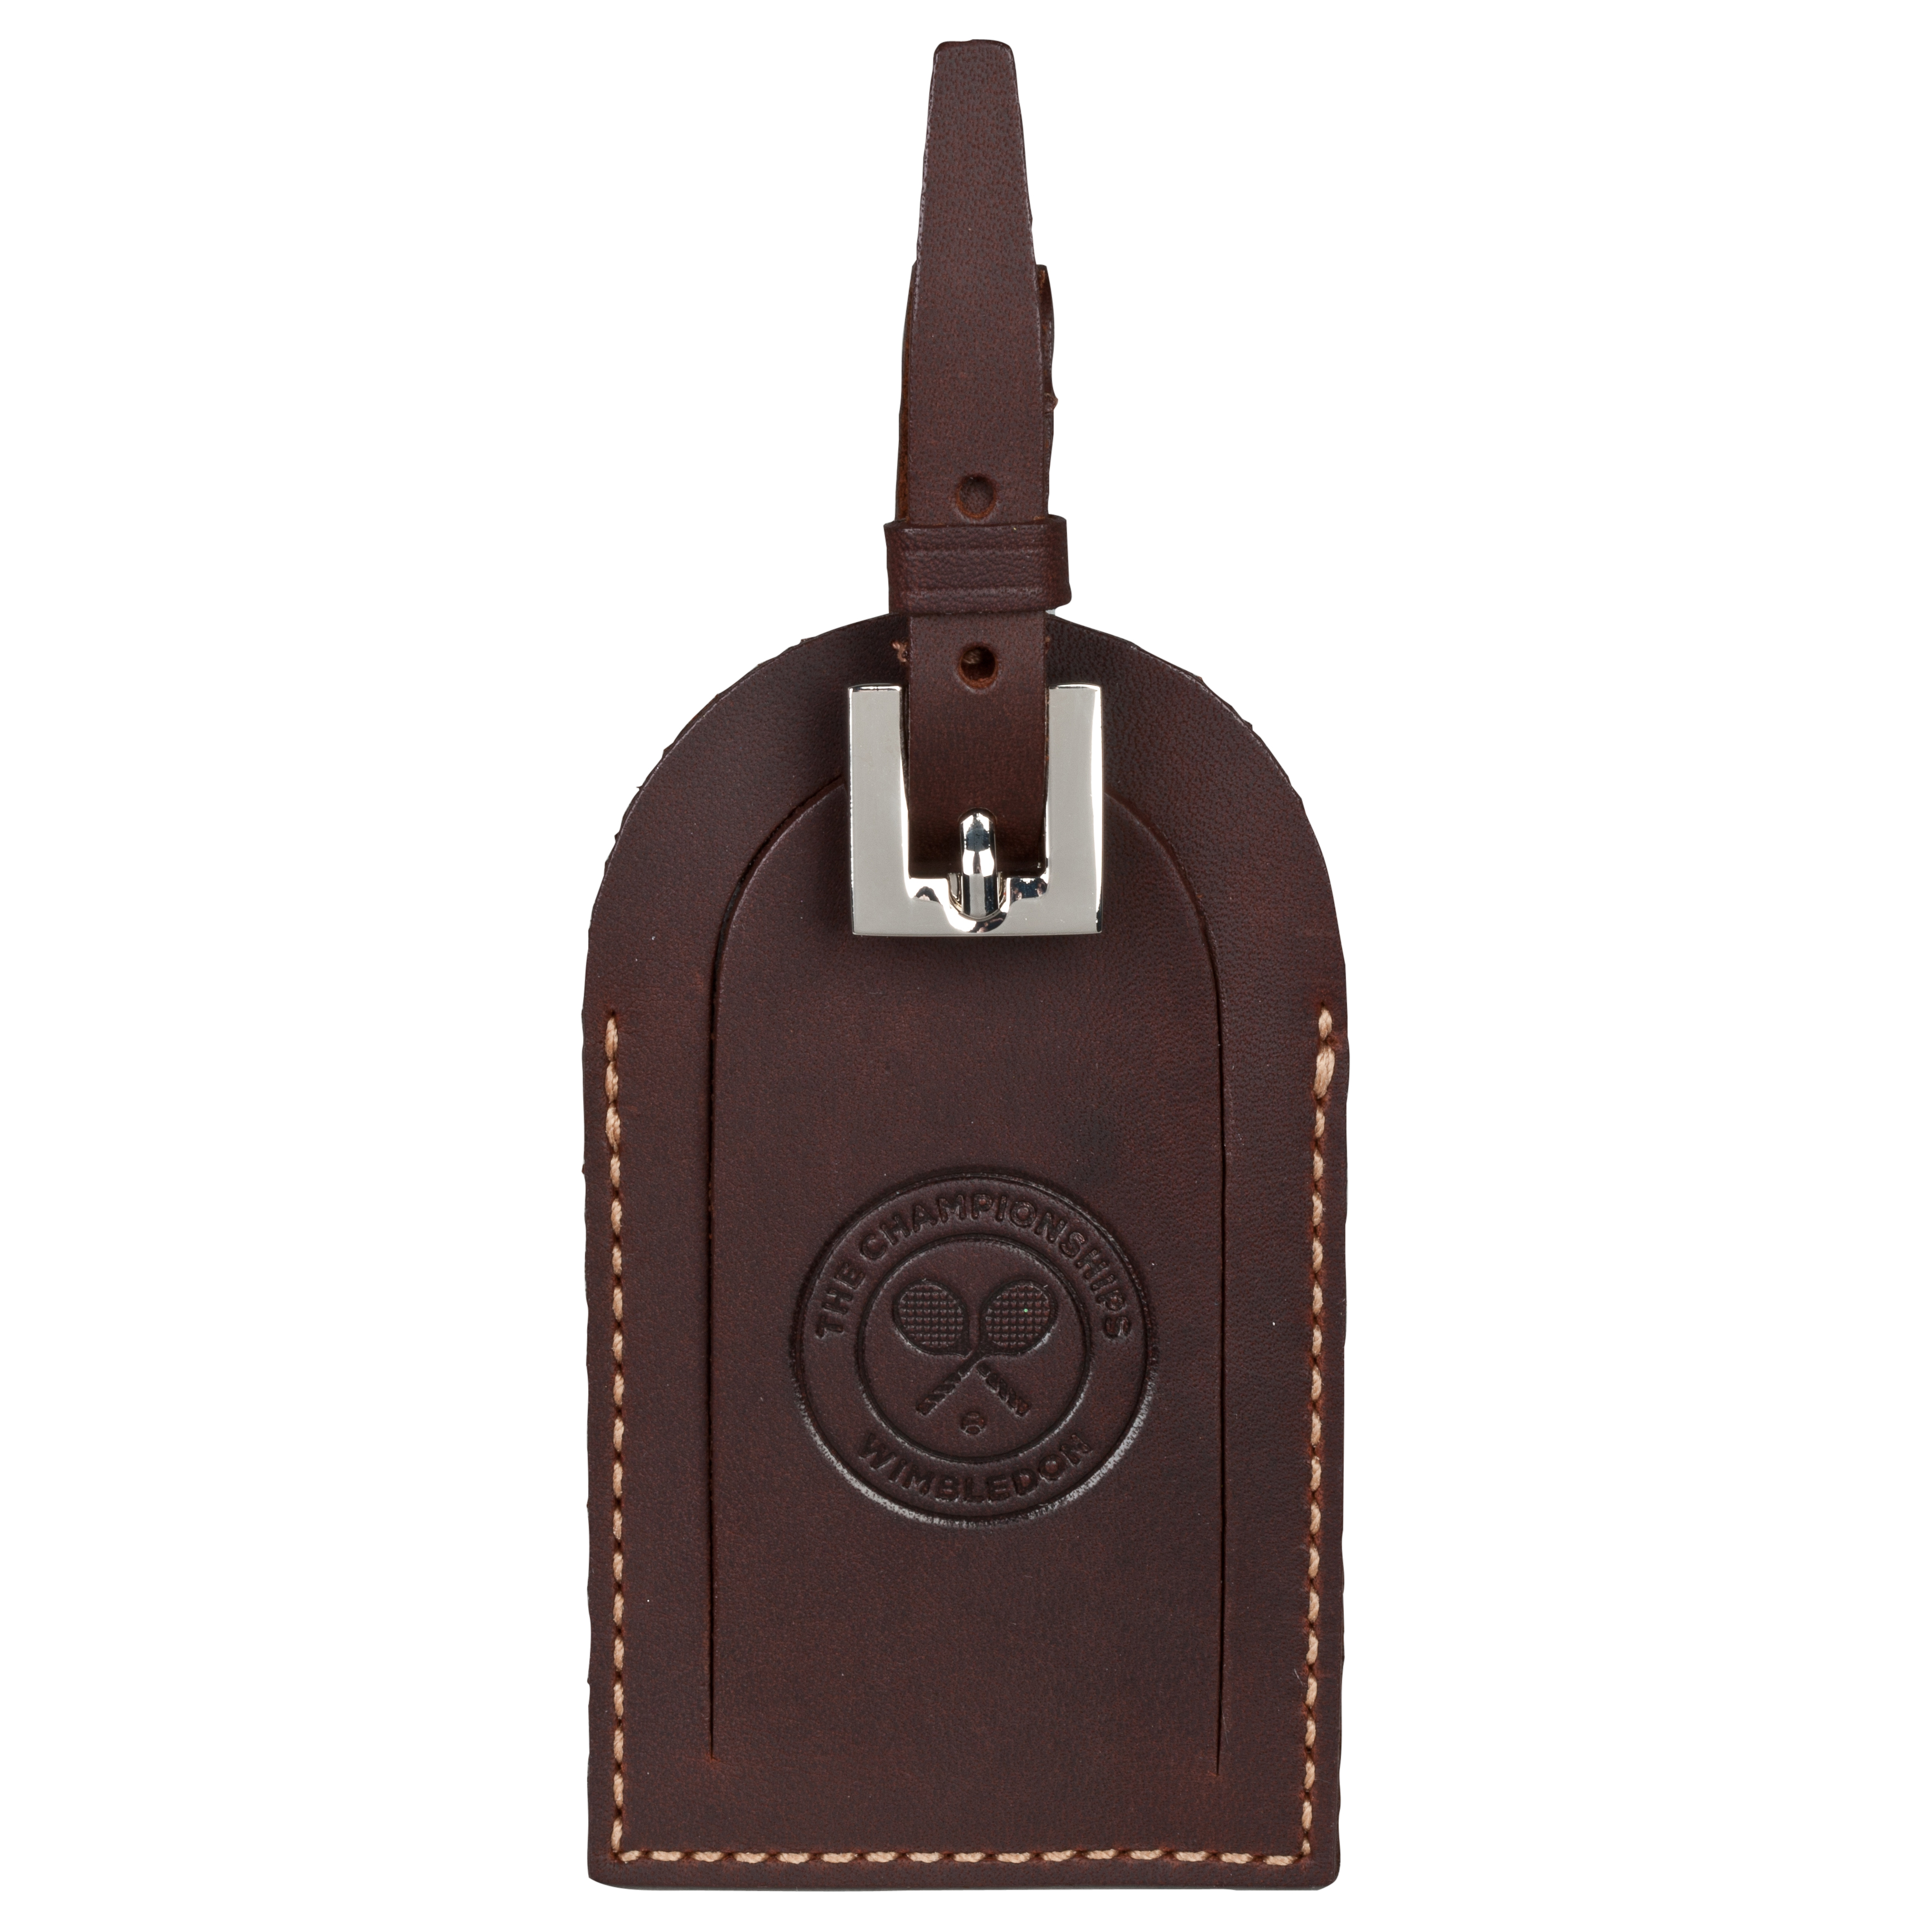 Wimbledon Luggage Tag